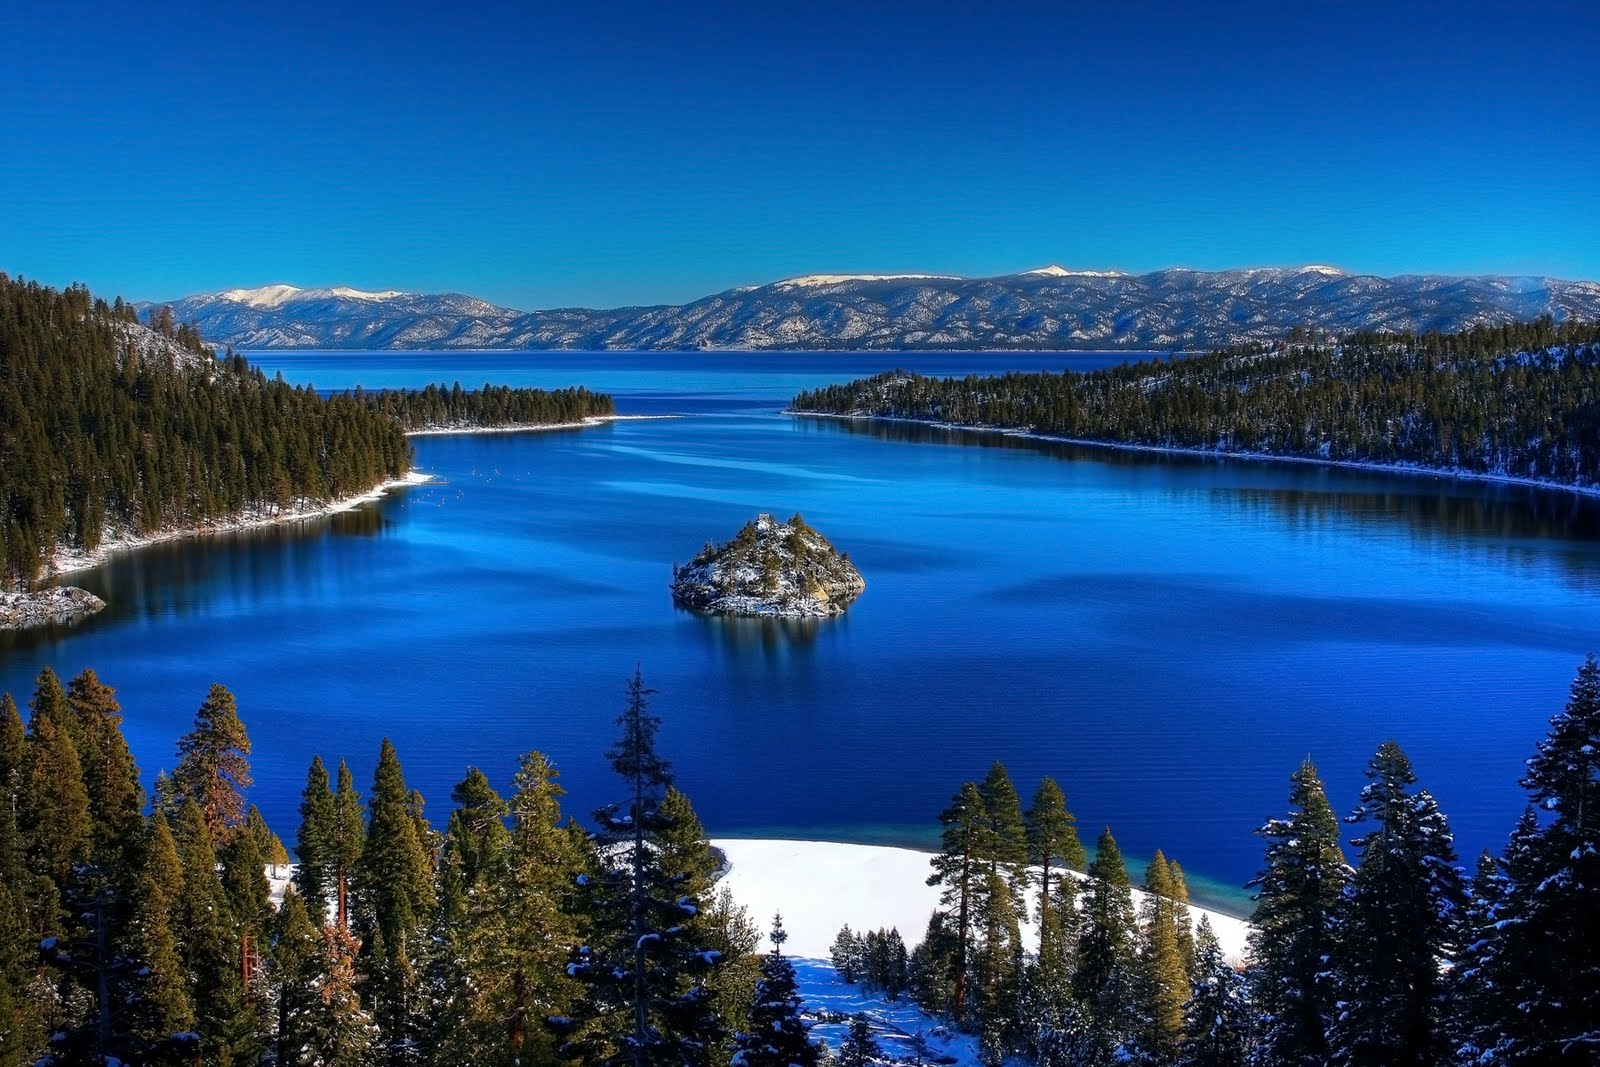 tahoe lake tahoe hd wallpaper lake tahoe hd desktop wallpaper 1600x1067